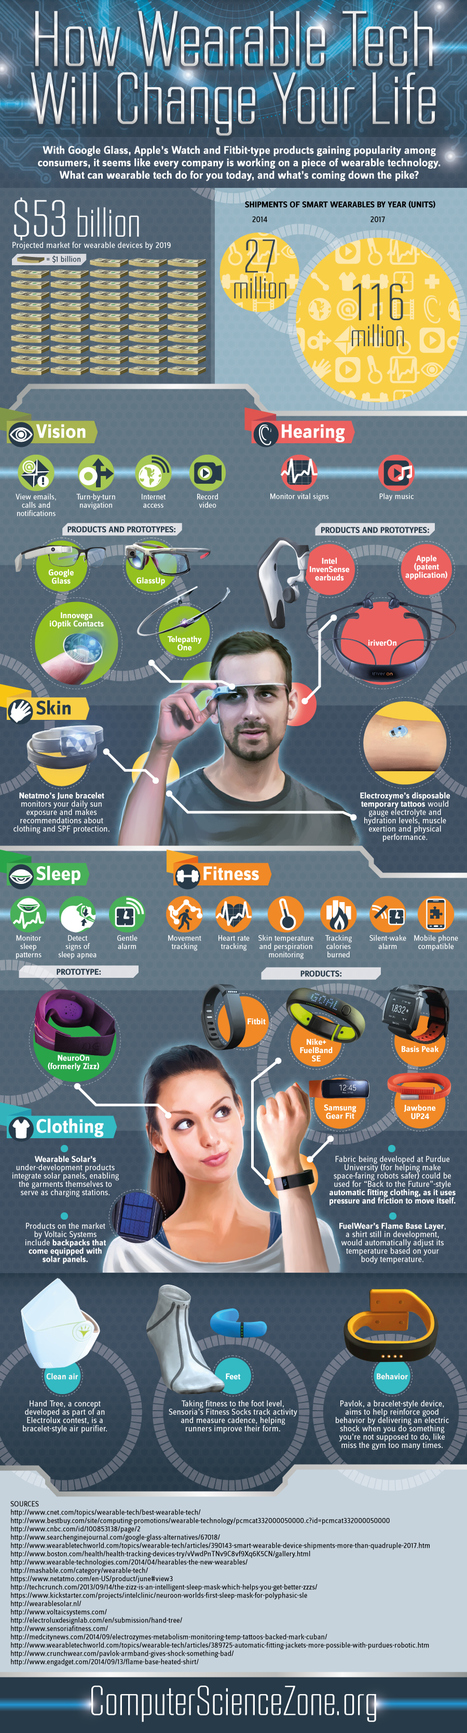 How Wearable Tech will change your life | mobile & embedded engineering | Scoop.it